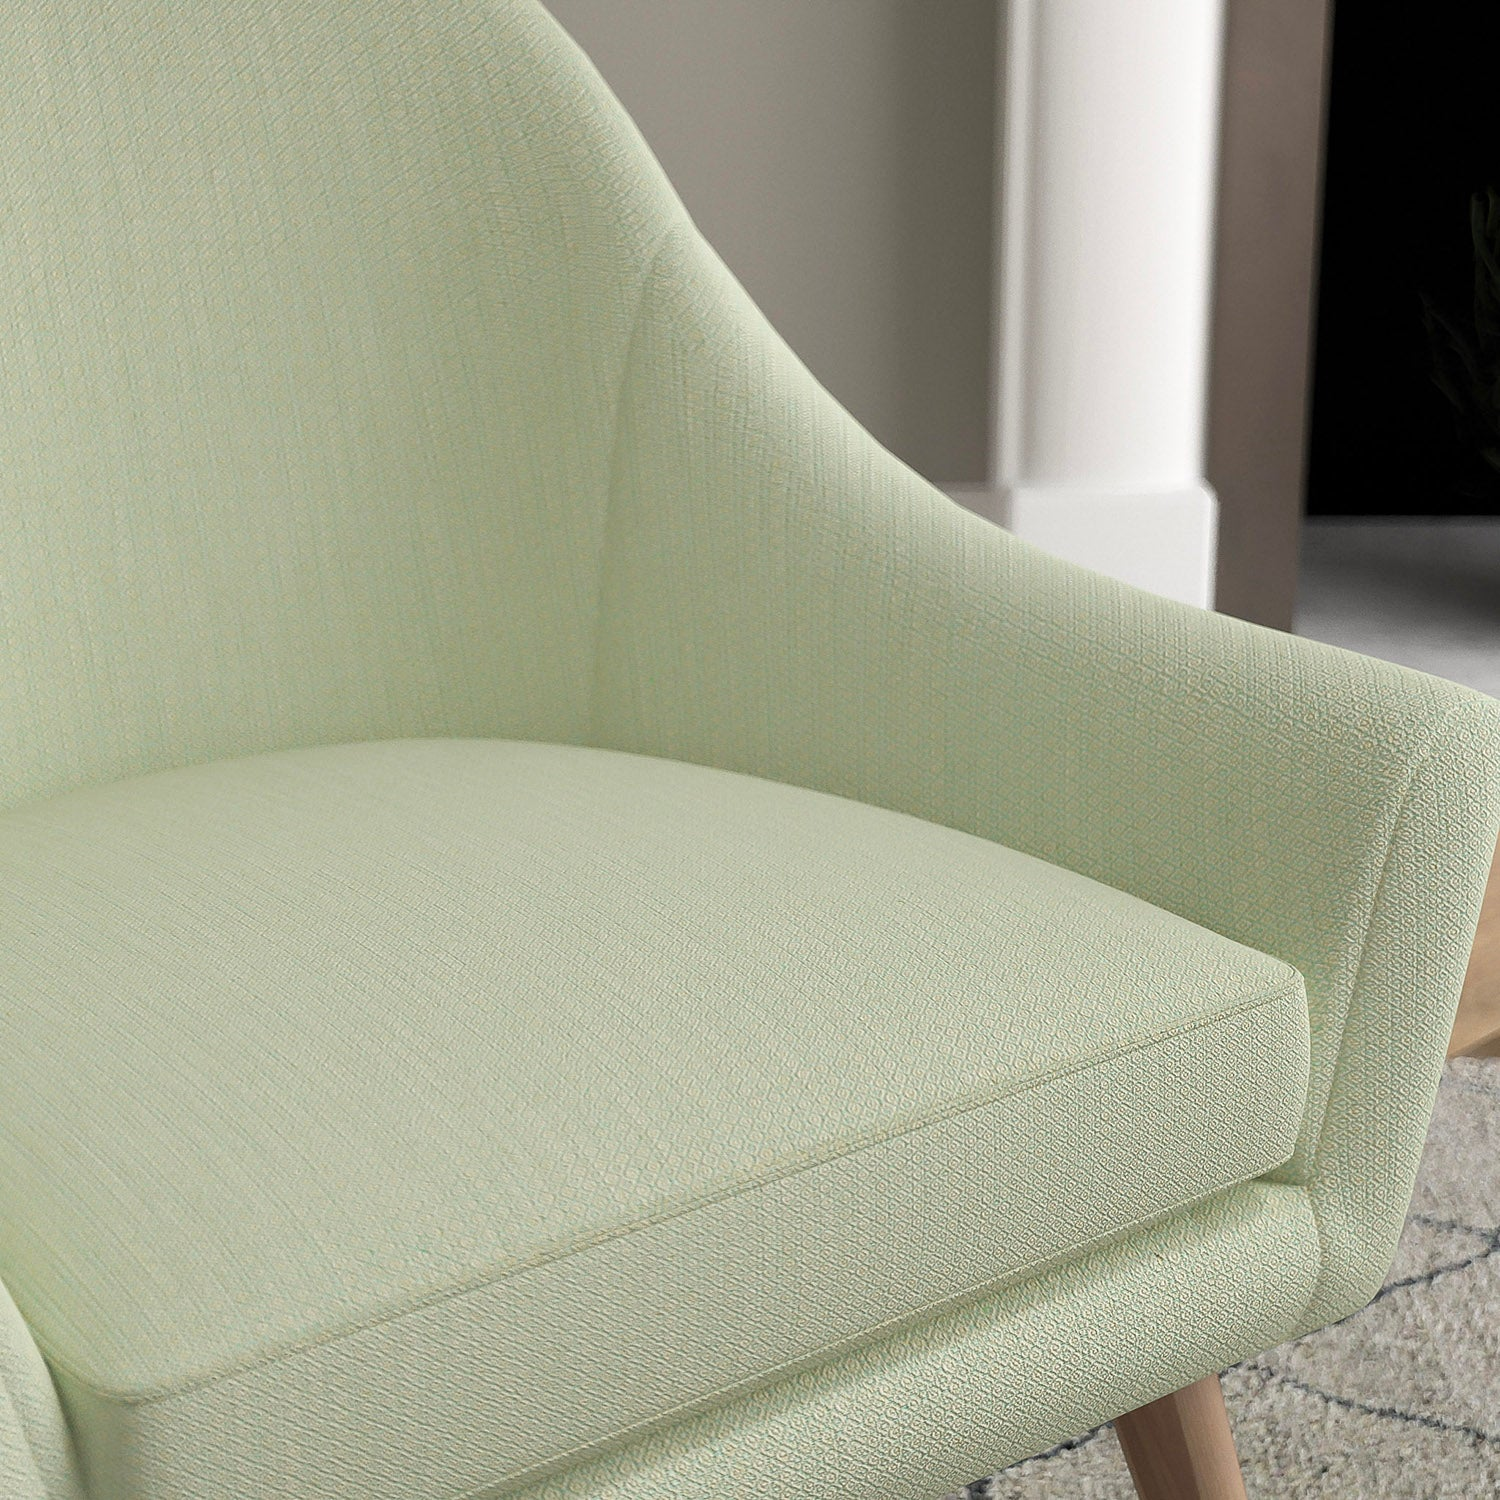 Chair with a mint green and neutral upholstery fabric with a small diamond weave fabric